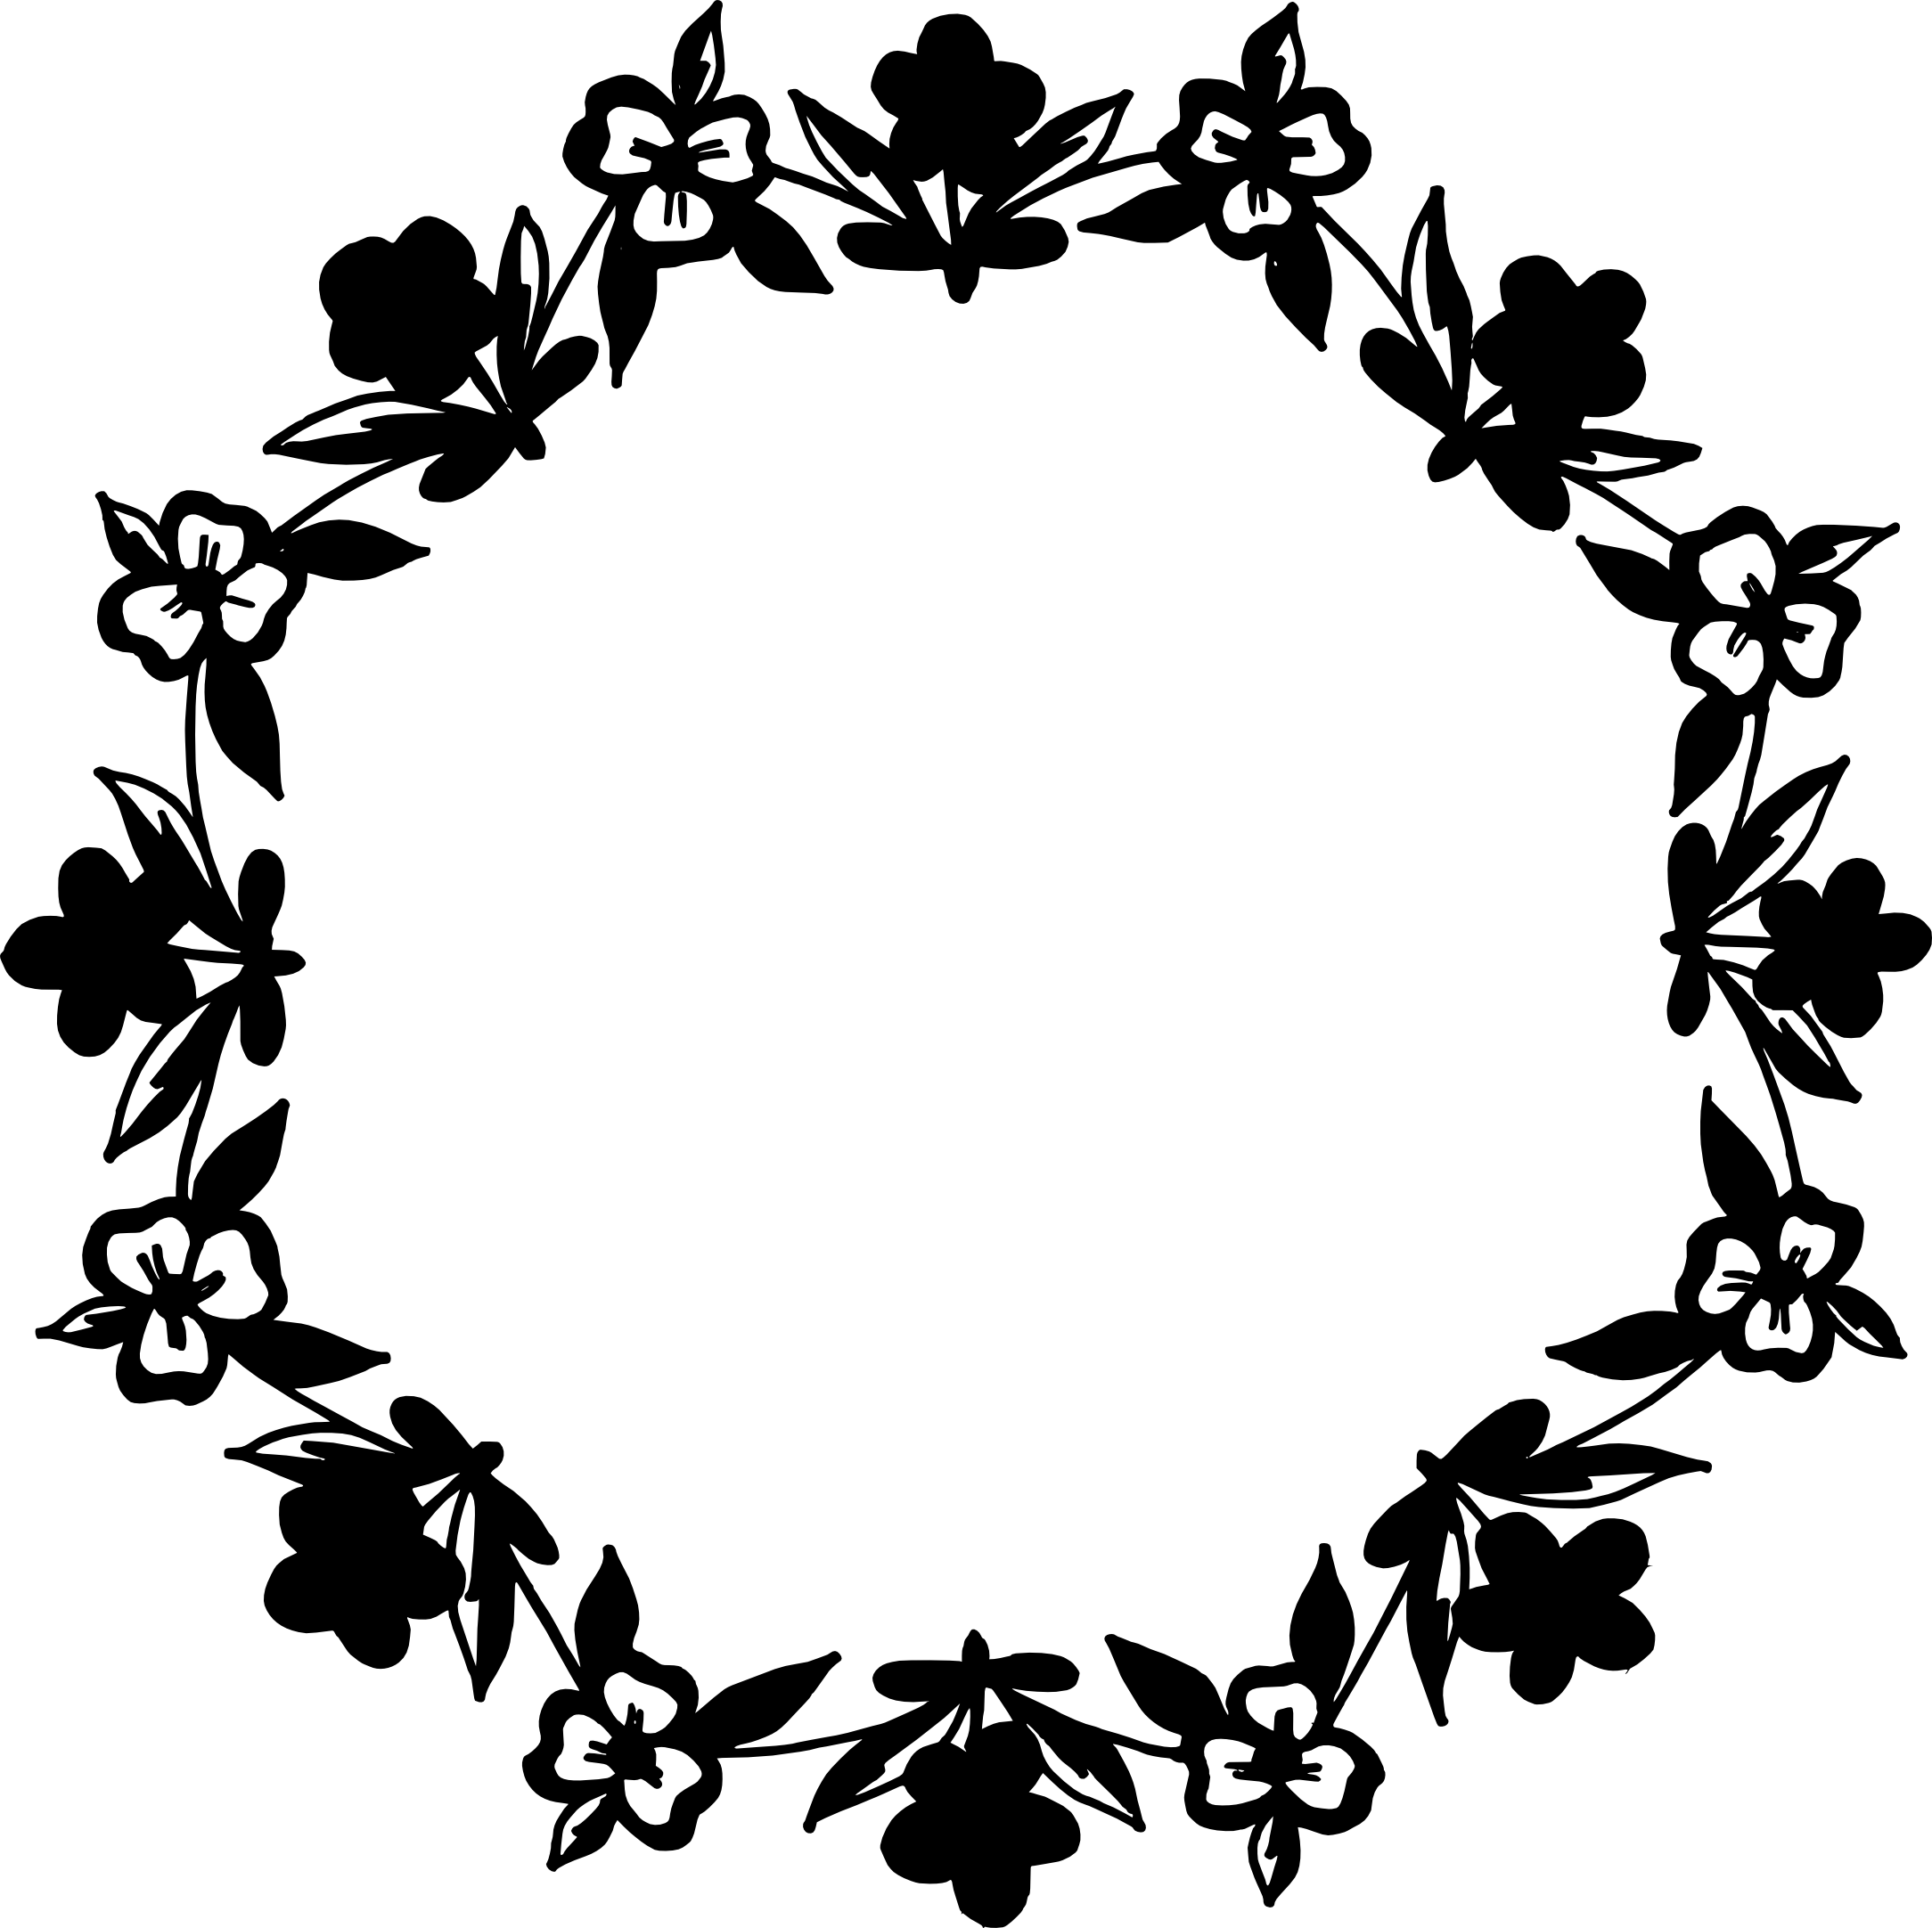 Flower circle border clipart clipart black and white stock 10 Circle Floral Frame Vector (PNG Transparent, SVG) | OnlyGFX.com clipart black and white stock